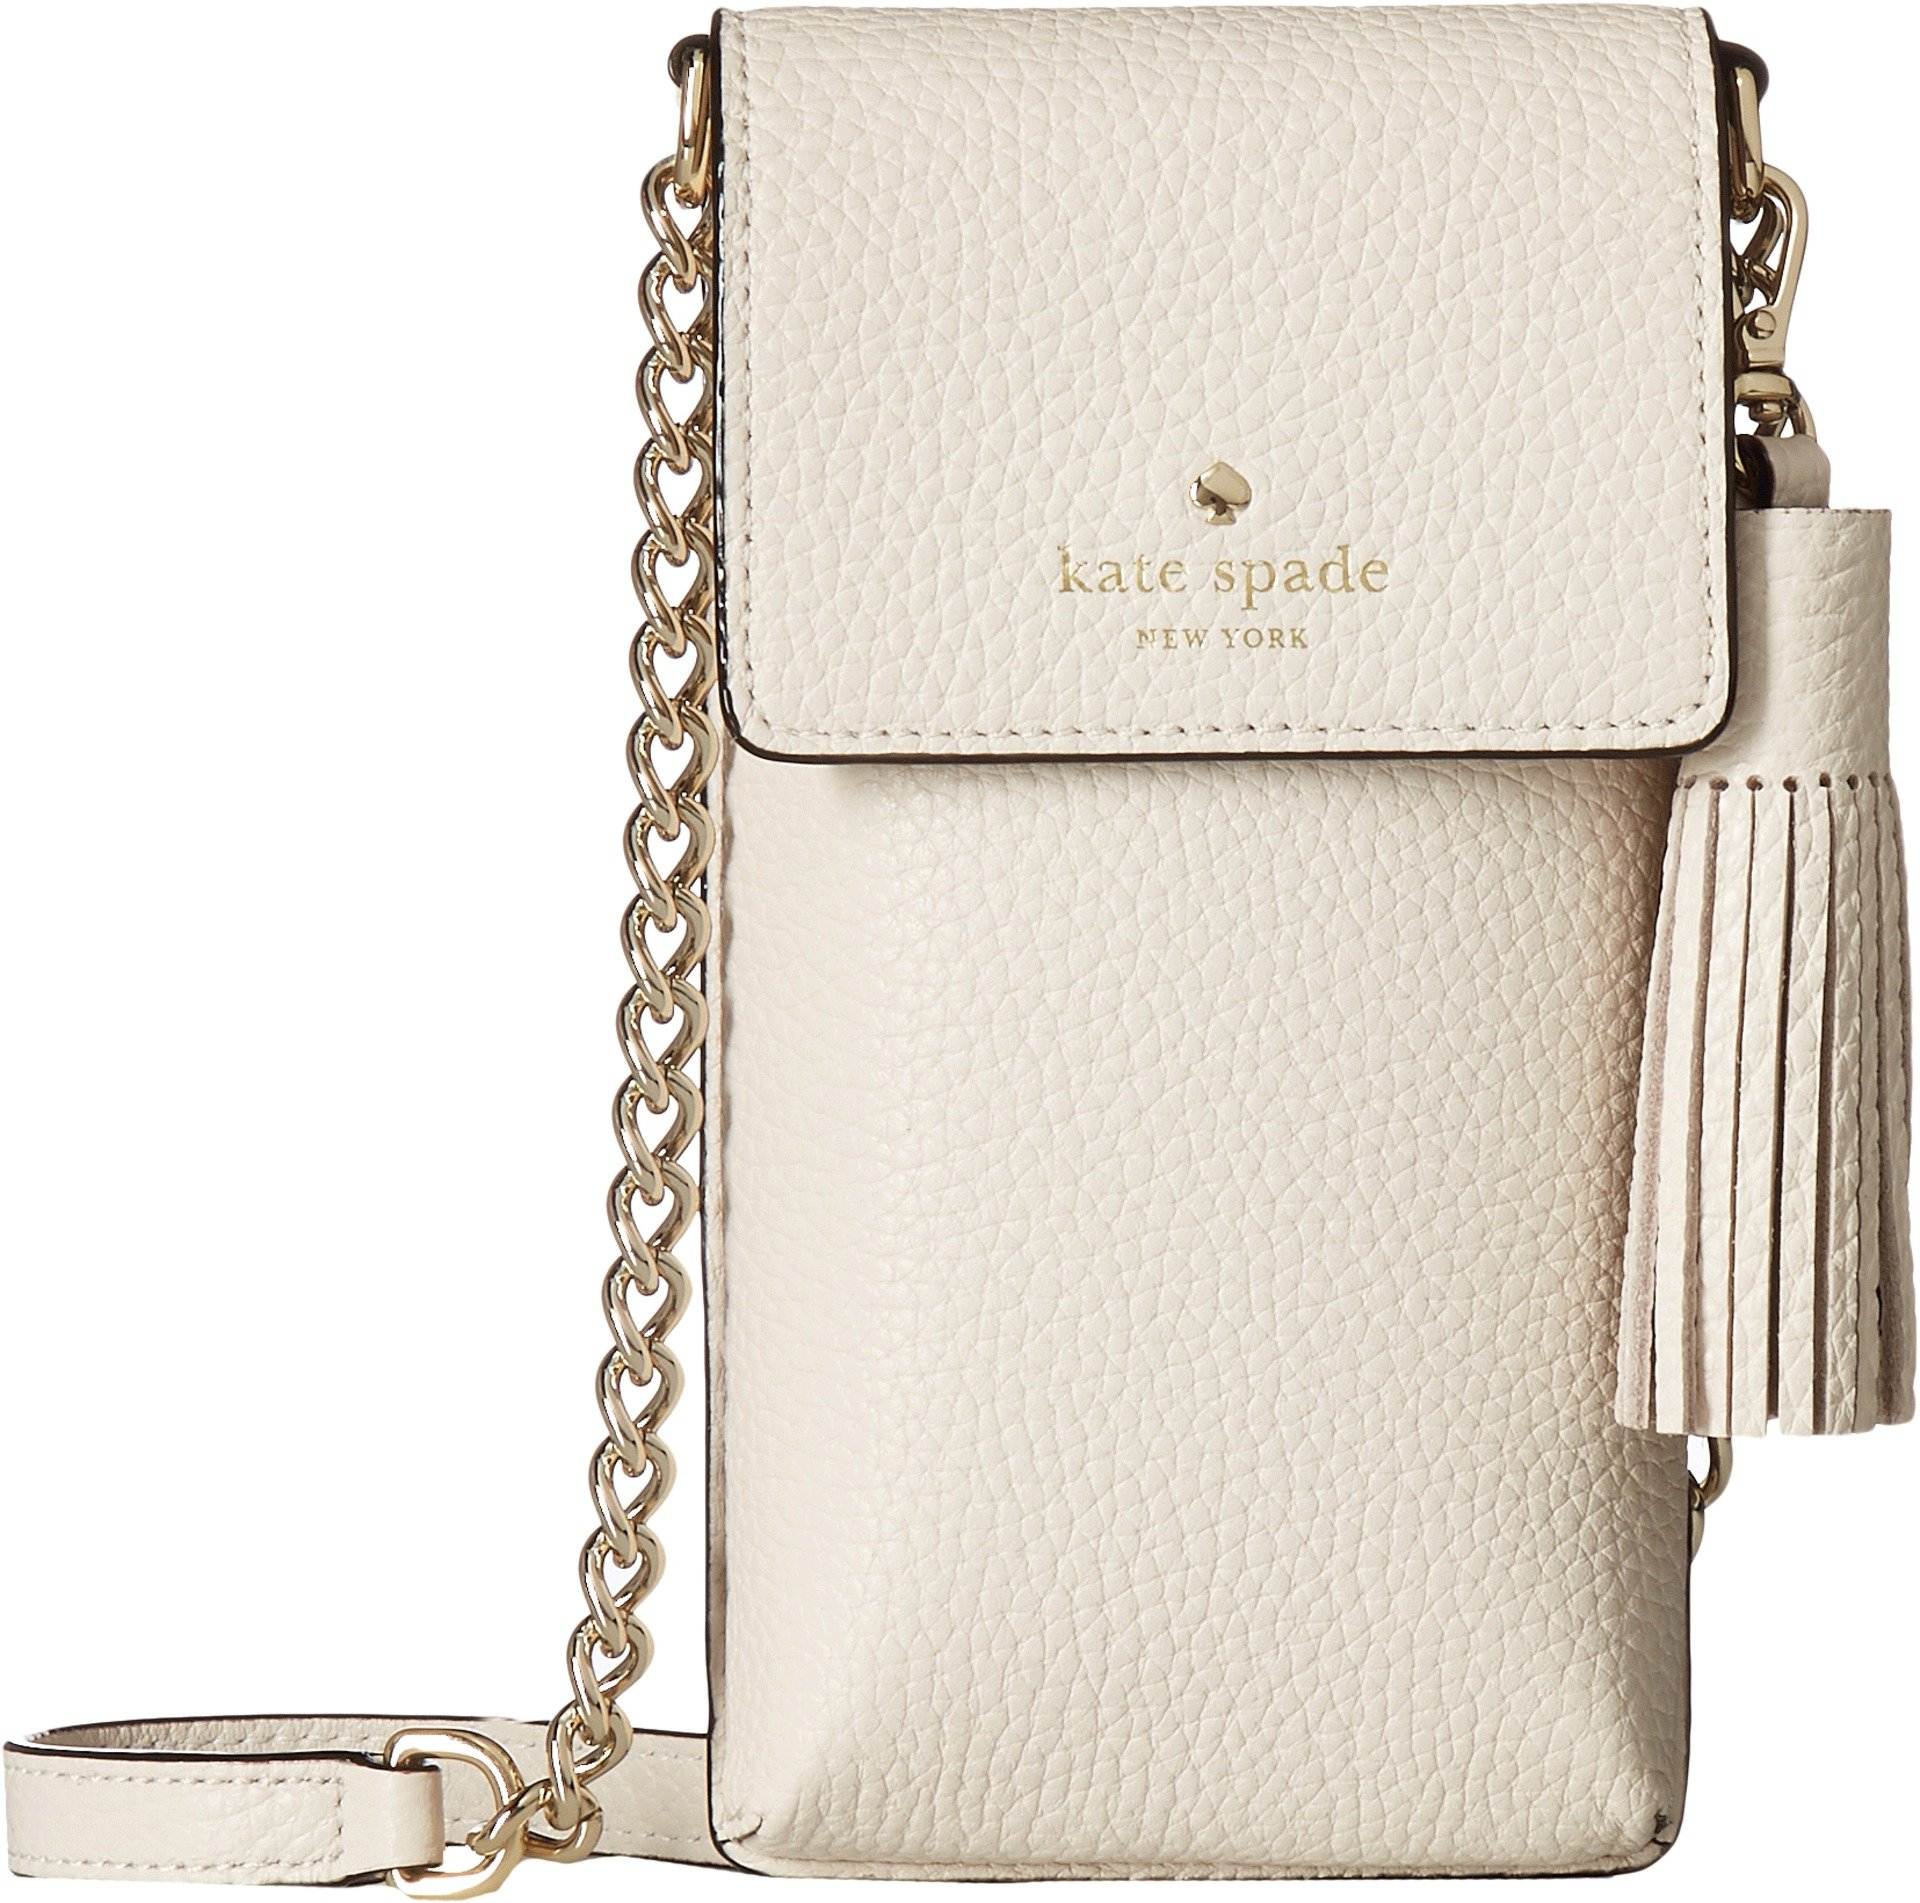 Kate Spade New York Women's North/South Crossbody Phone Case for iPhone 6, 6s, 7, 8 Bleach Bone One Size